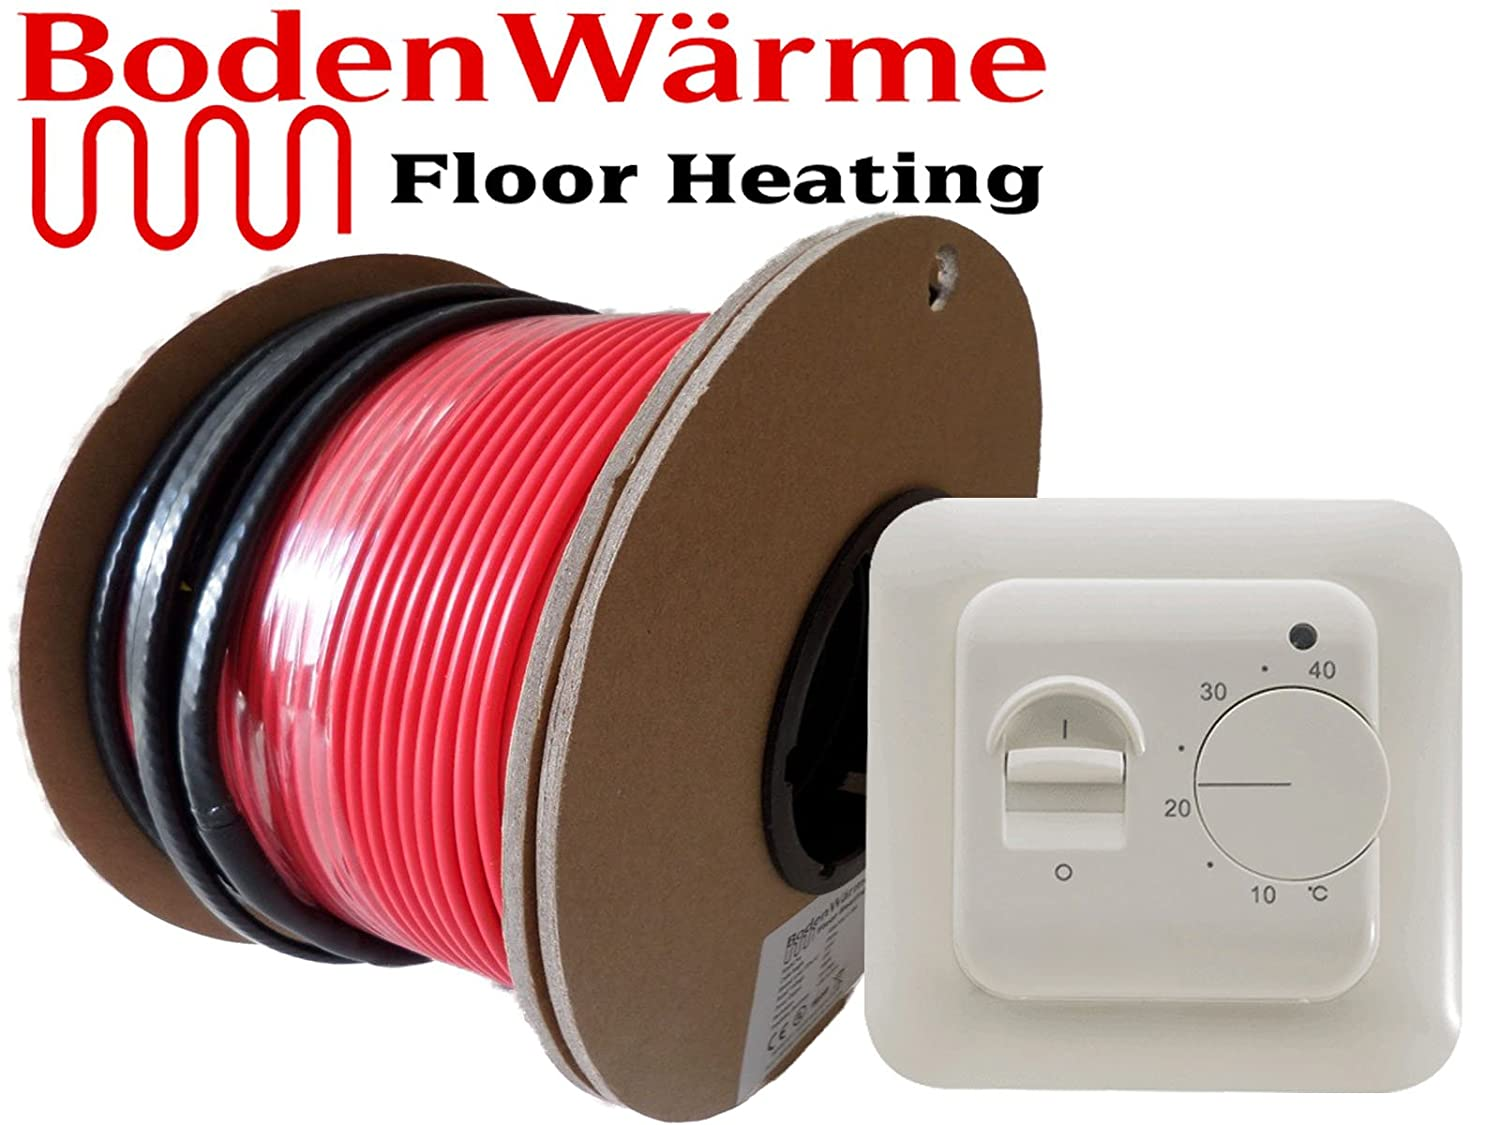 Electric Underfloor Heating Cable Kit All Sizes Loose Wire 150w //m/² Tile Heating 2.5m/², Manual Thermostat